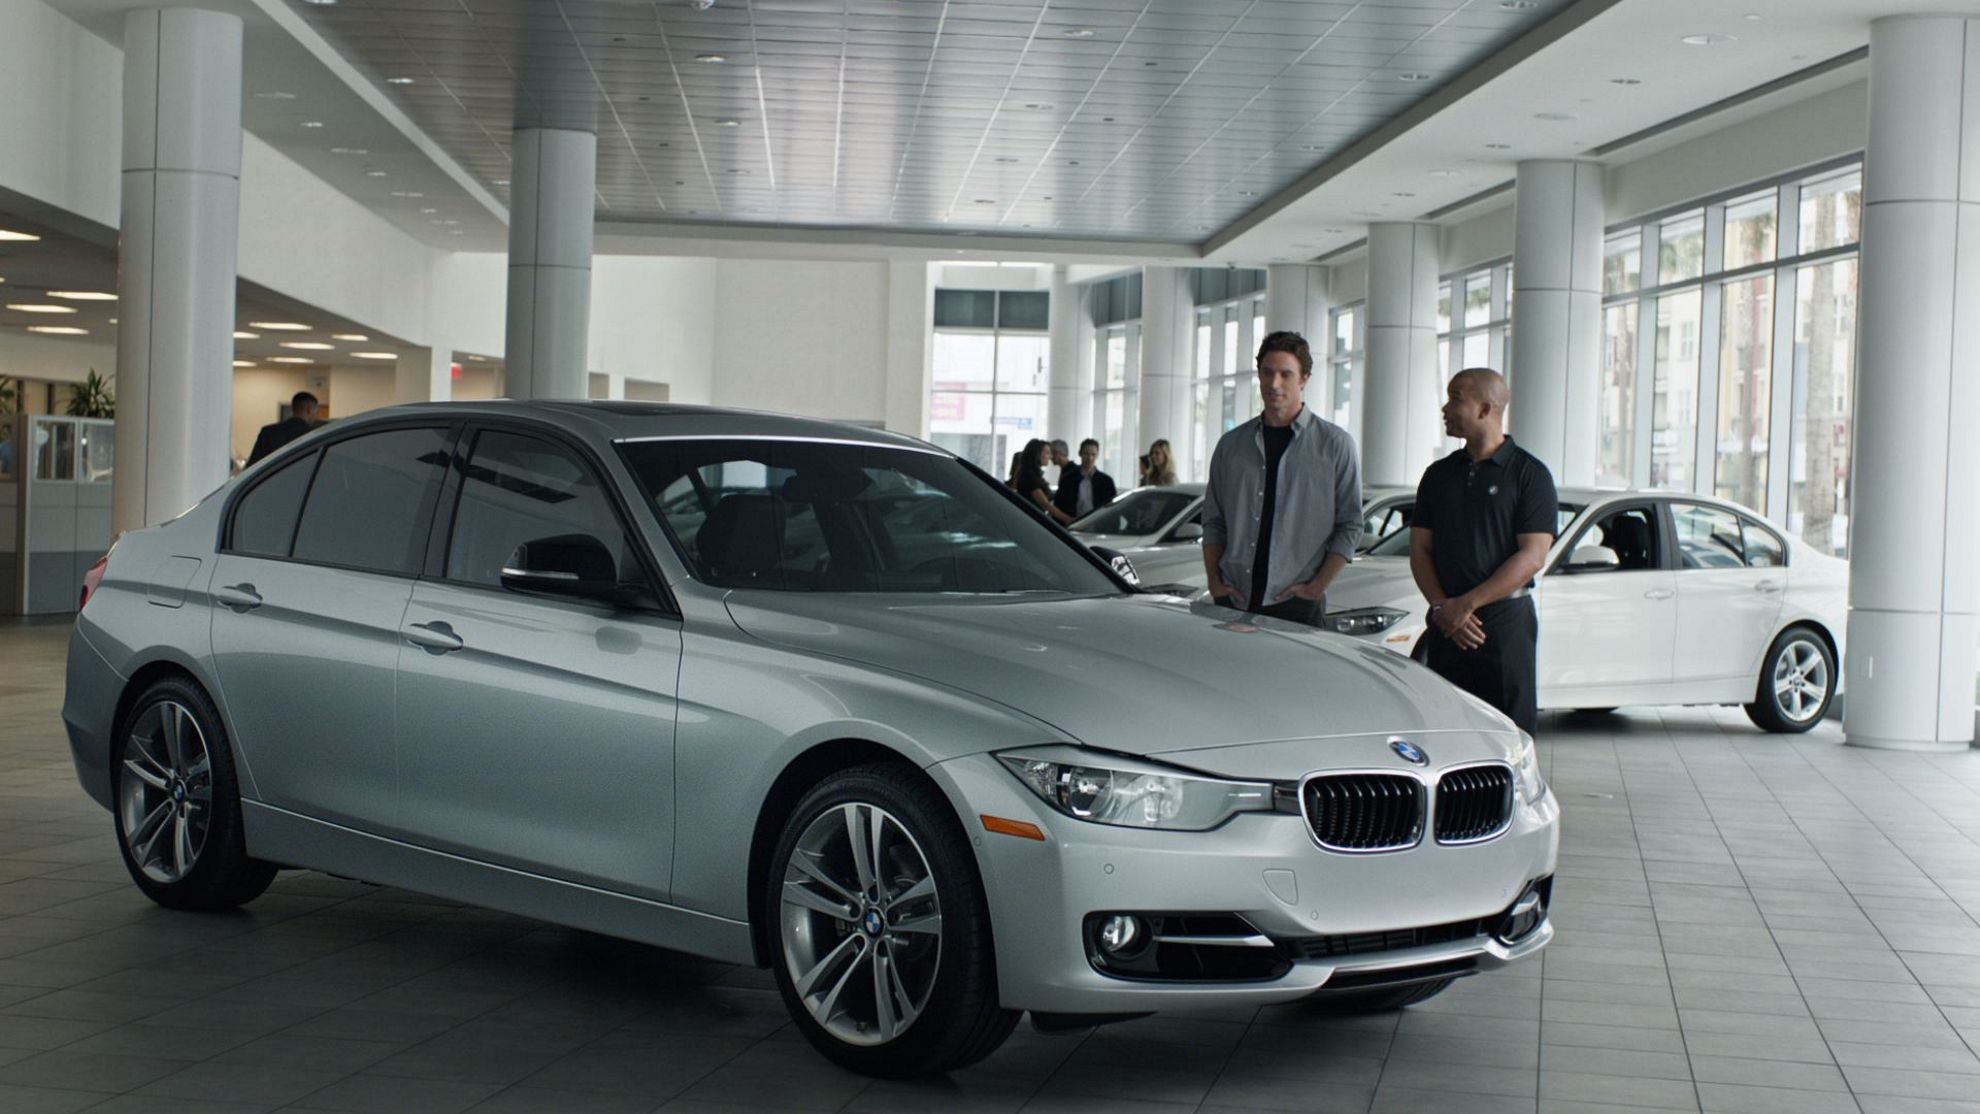 BMW_Commercial